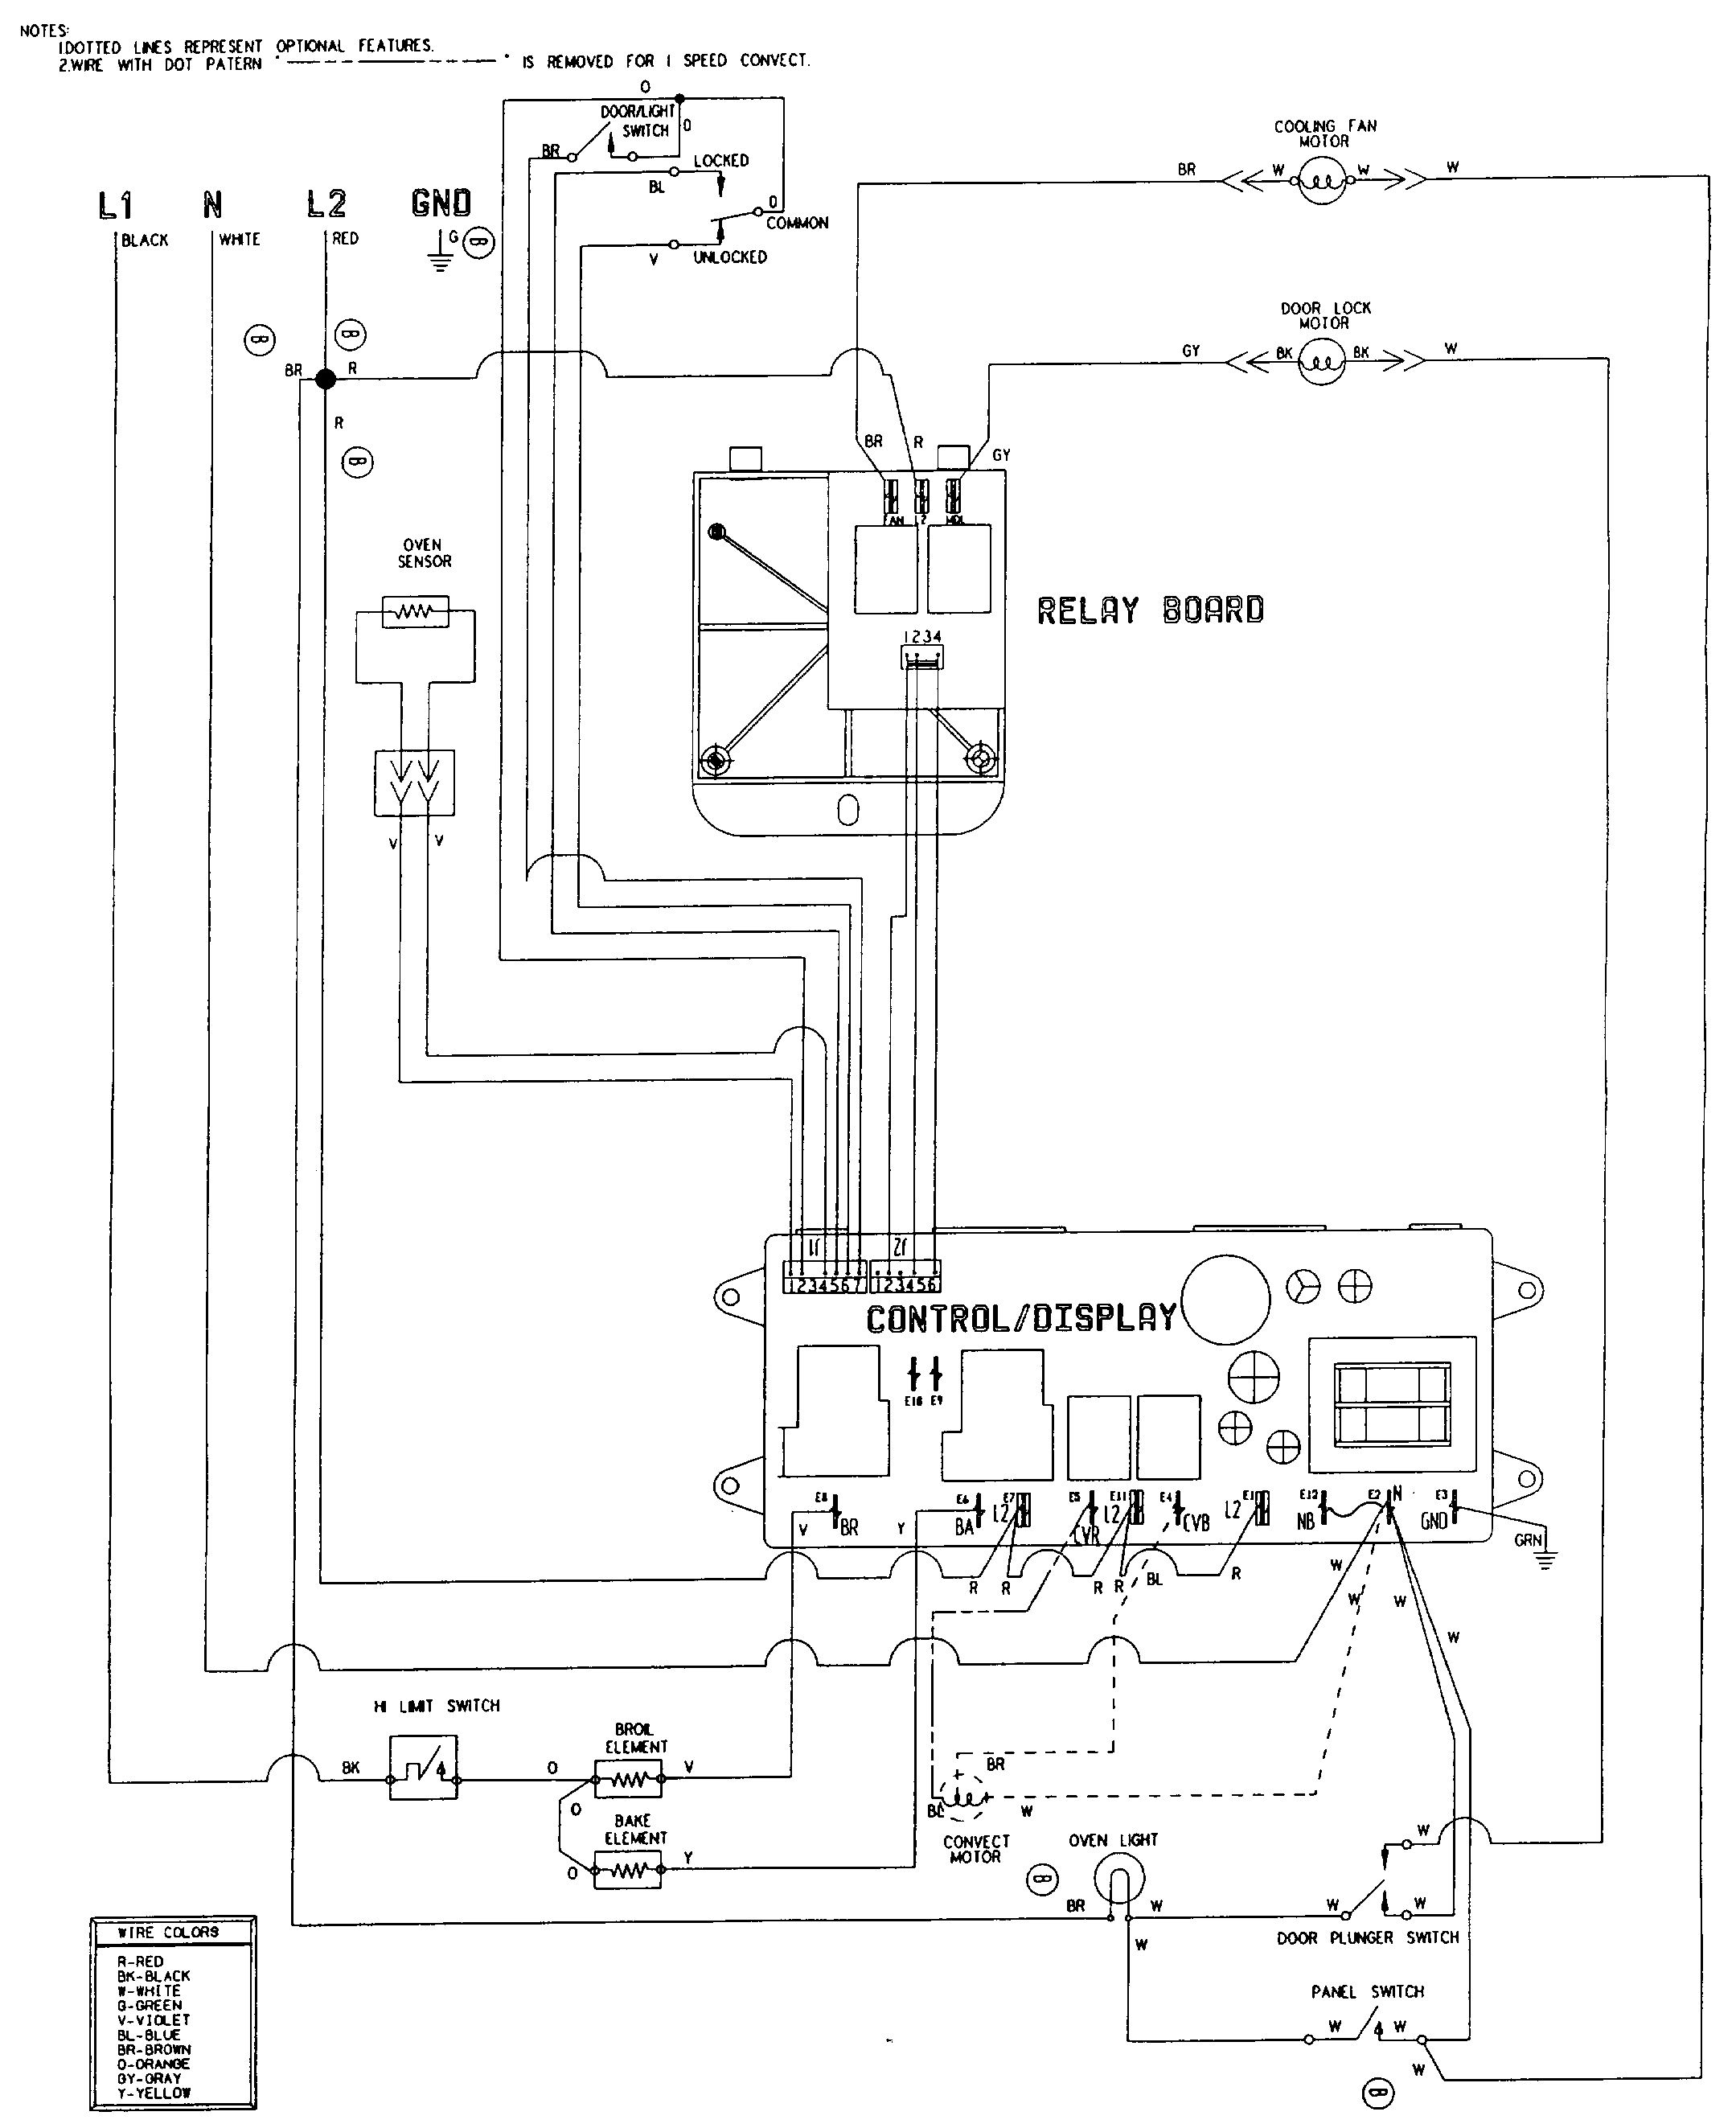 Ge Appliances Wiring Schematic Diagram Will Be A Thing Refrigerator Circuit Jenn Air W27100w Electric Wall Oven Timer Stove Clocks Motor Dryer